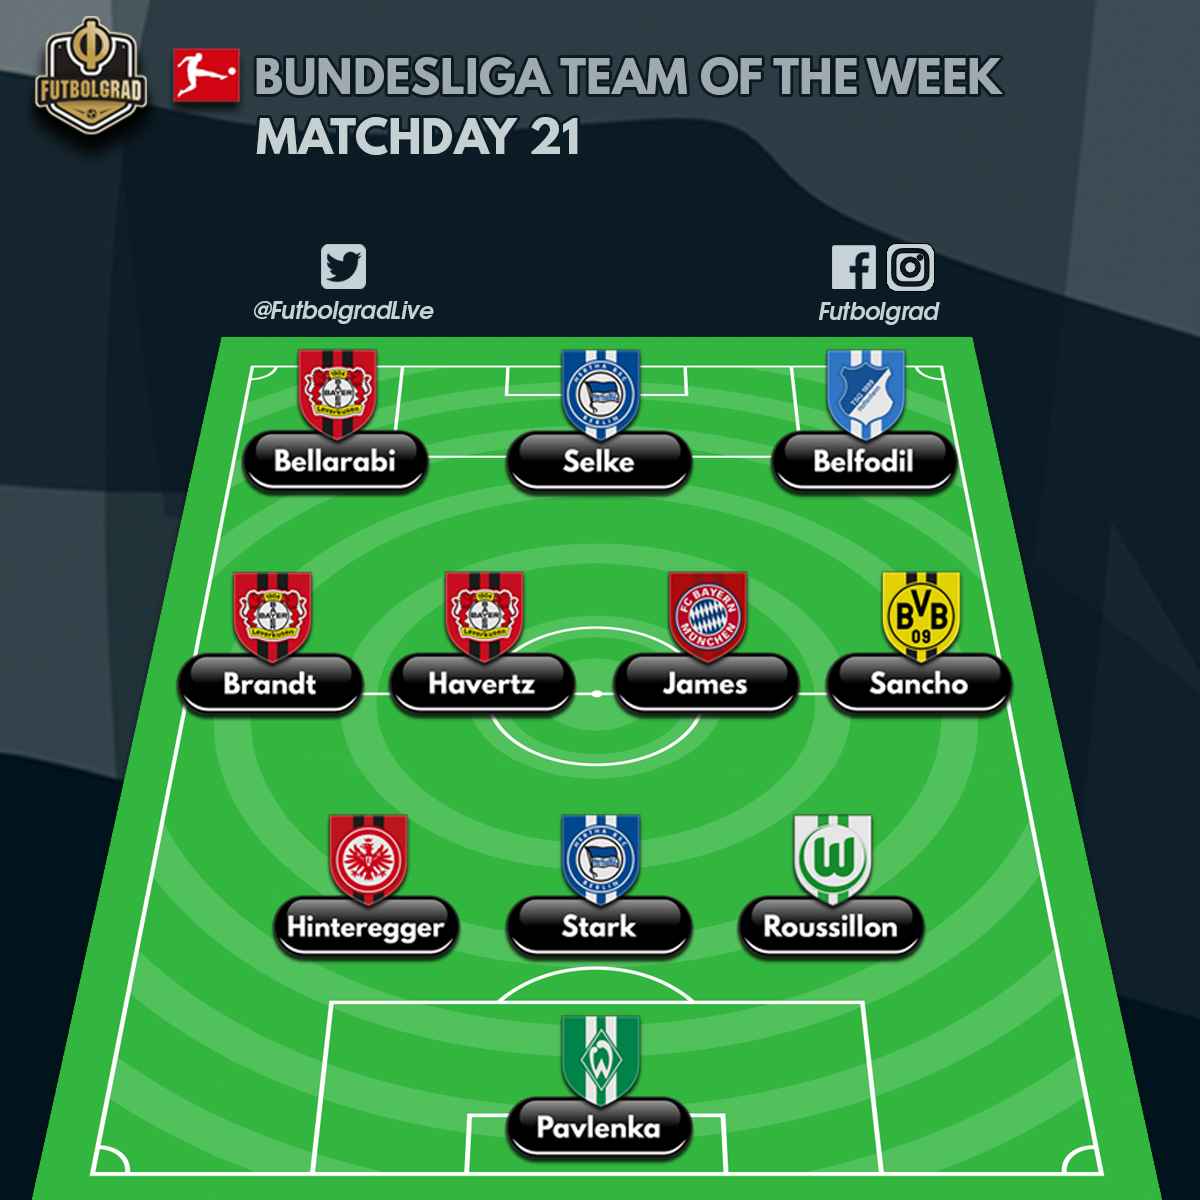 Bundesliga team of the week matchday 21